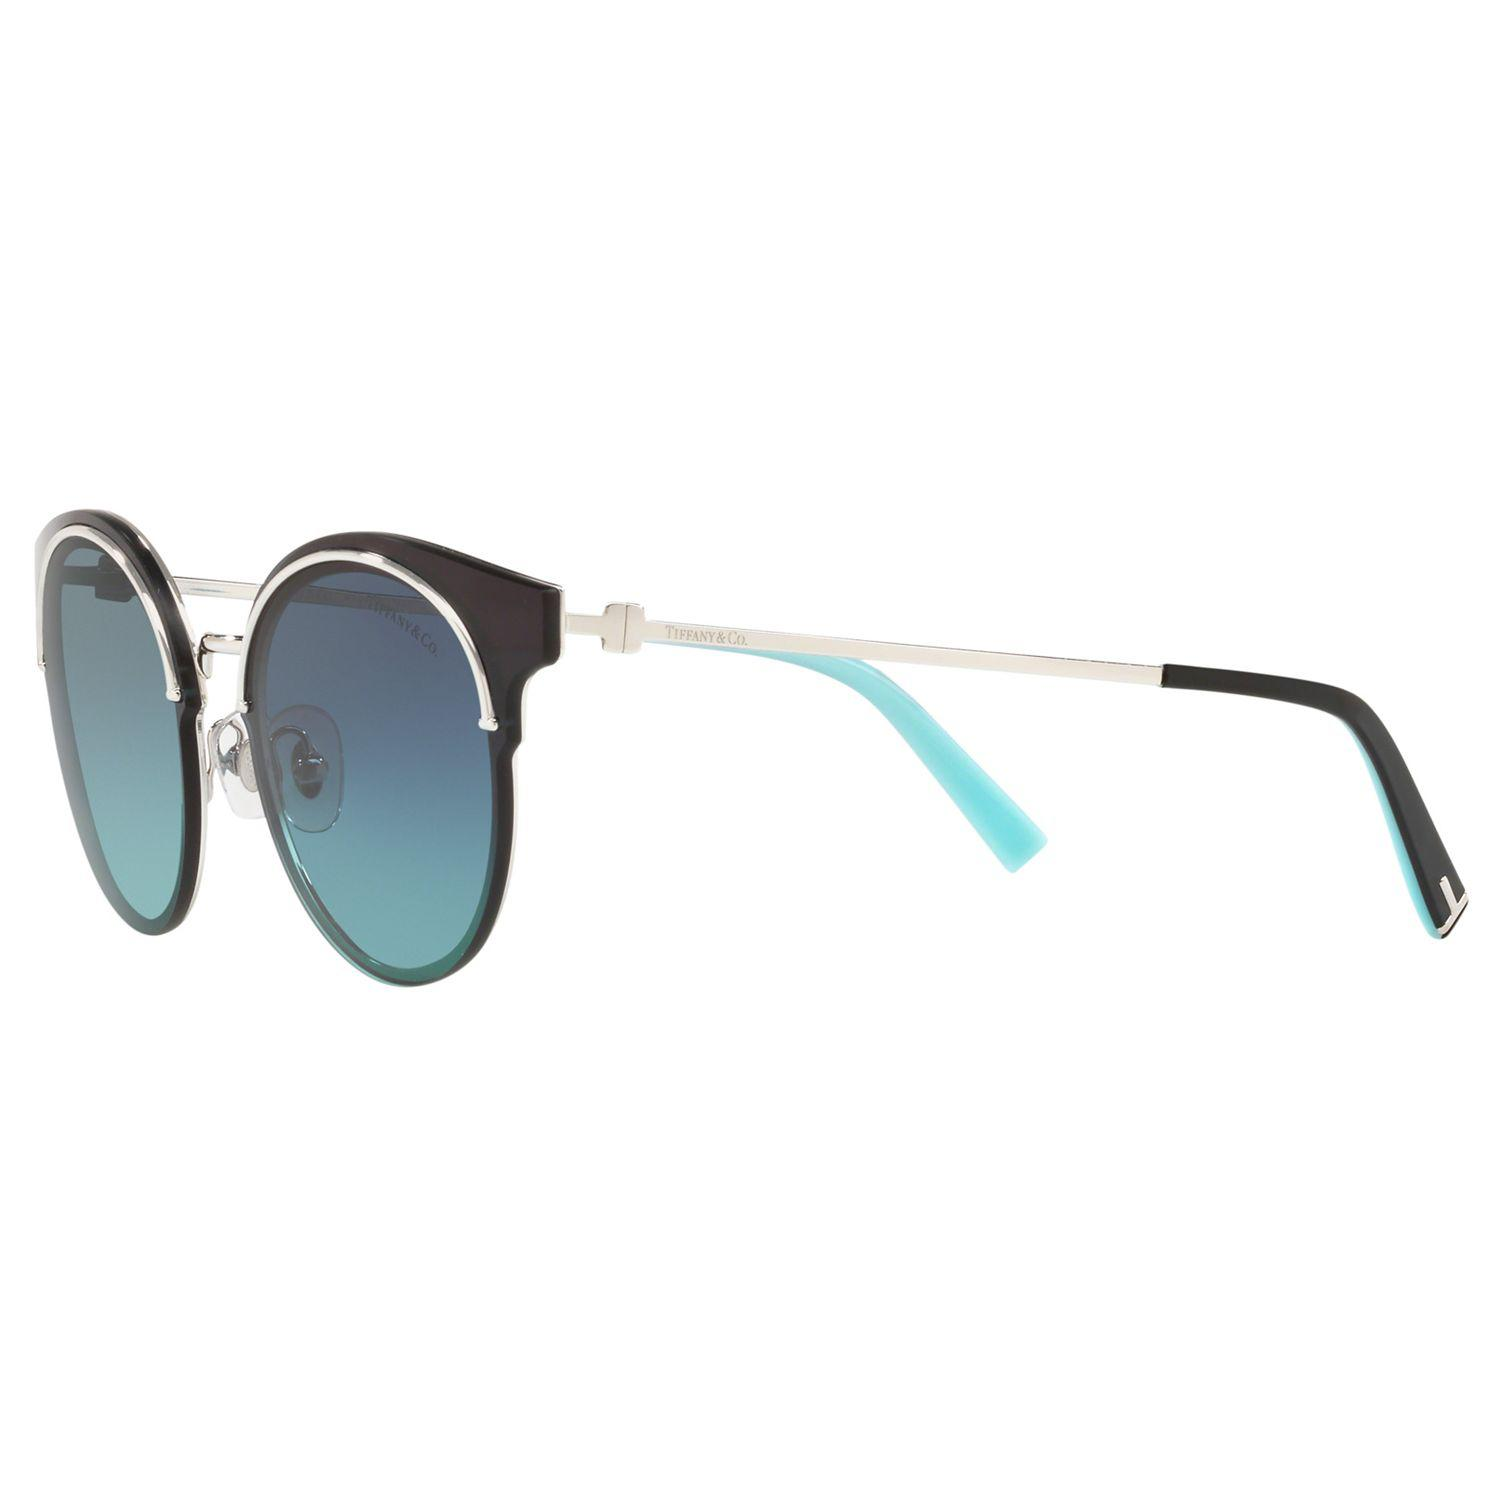 5c075395fe Tiffany   Co - Blue Tf3049b Women s Round Sunglasses - Lyst. View fullscreen